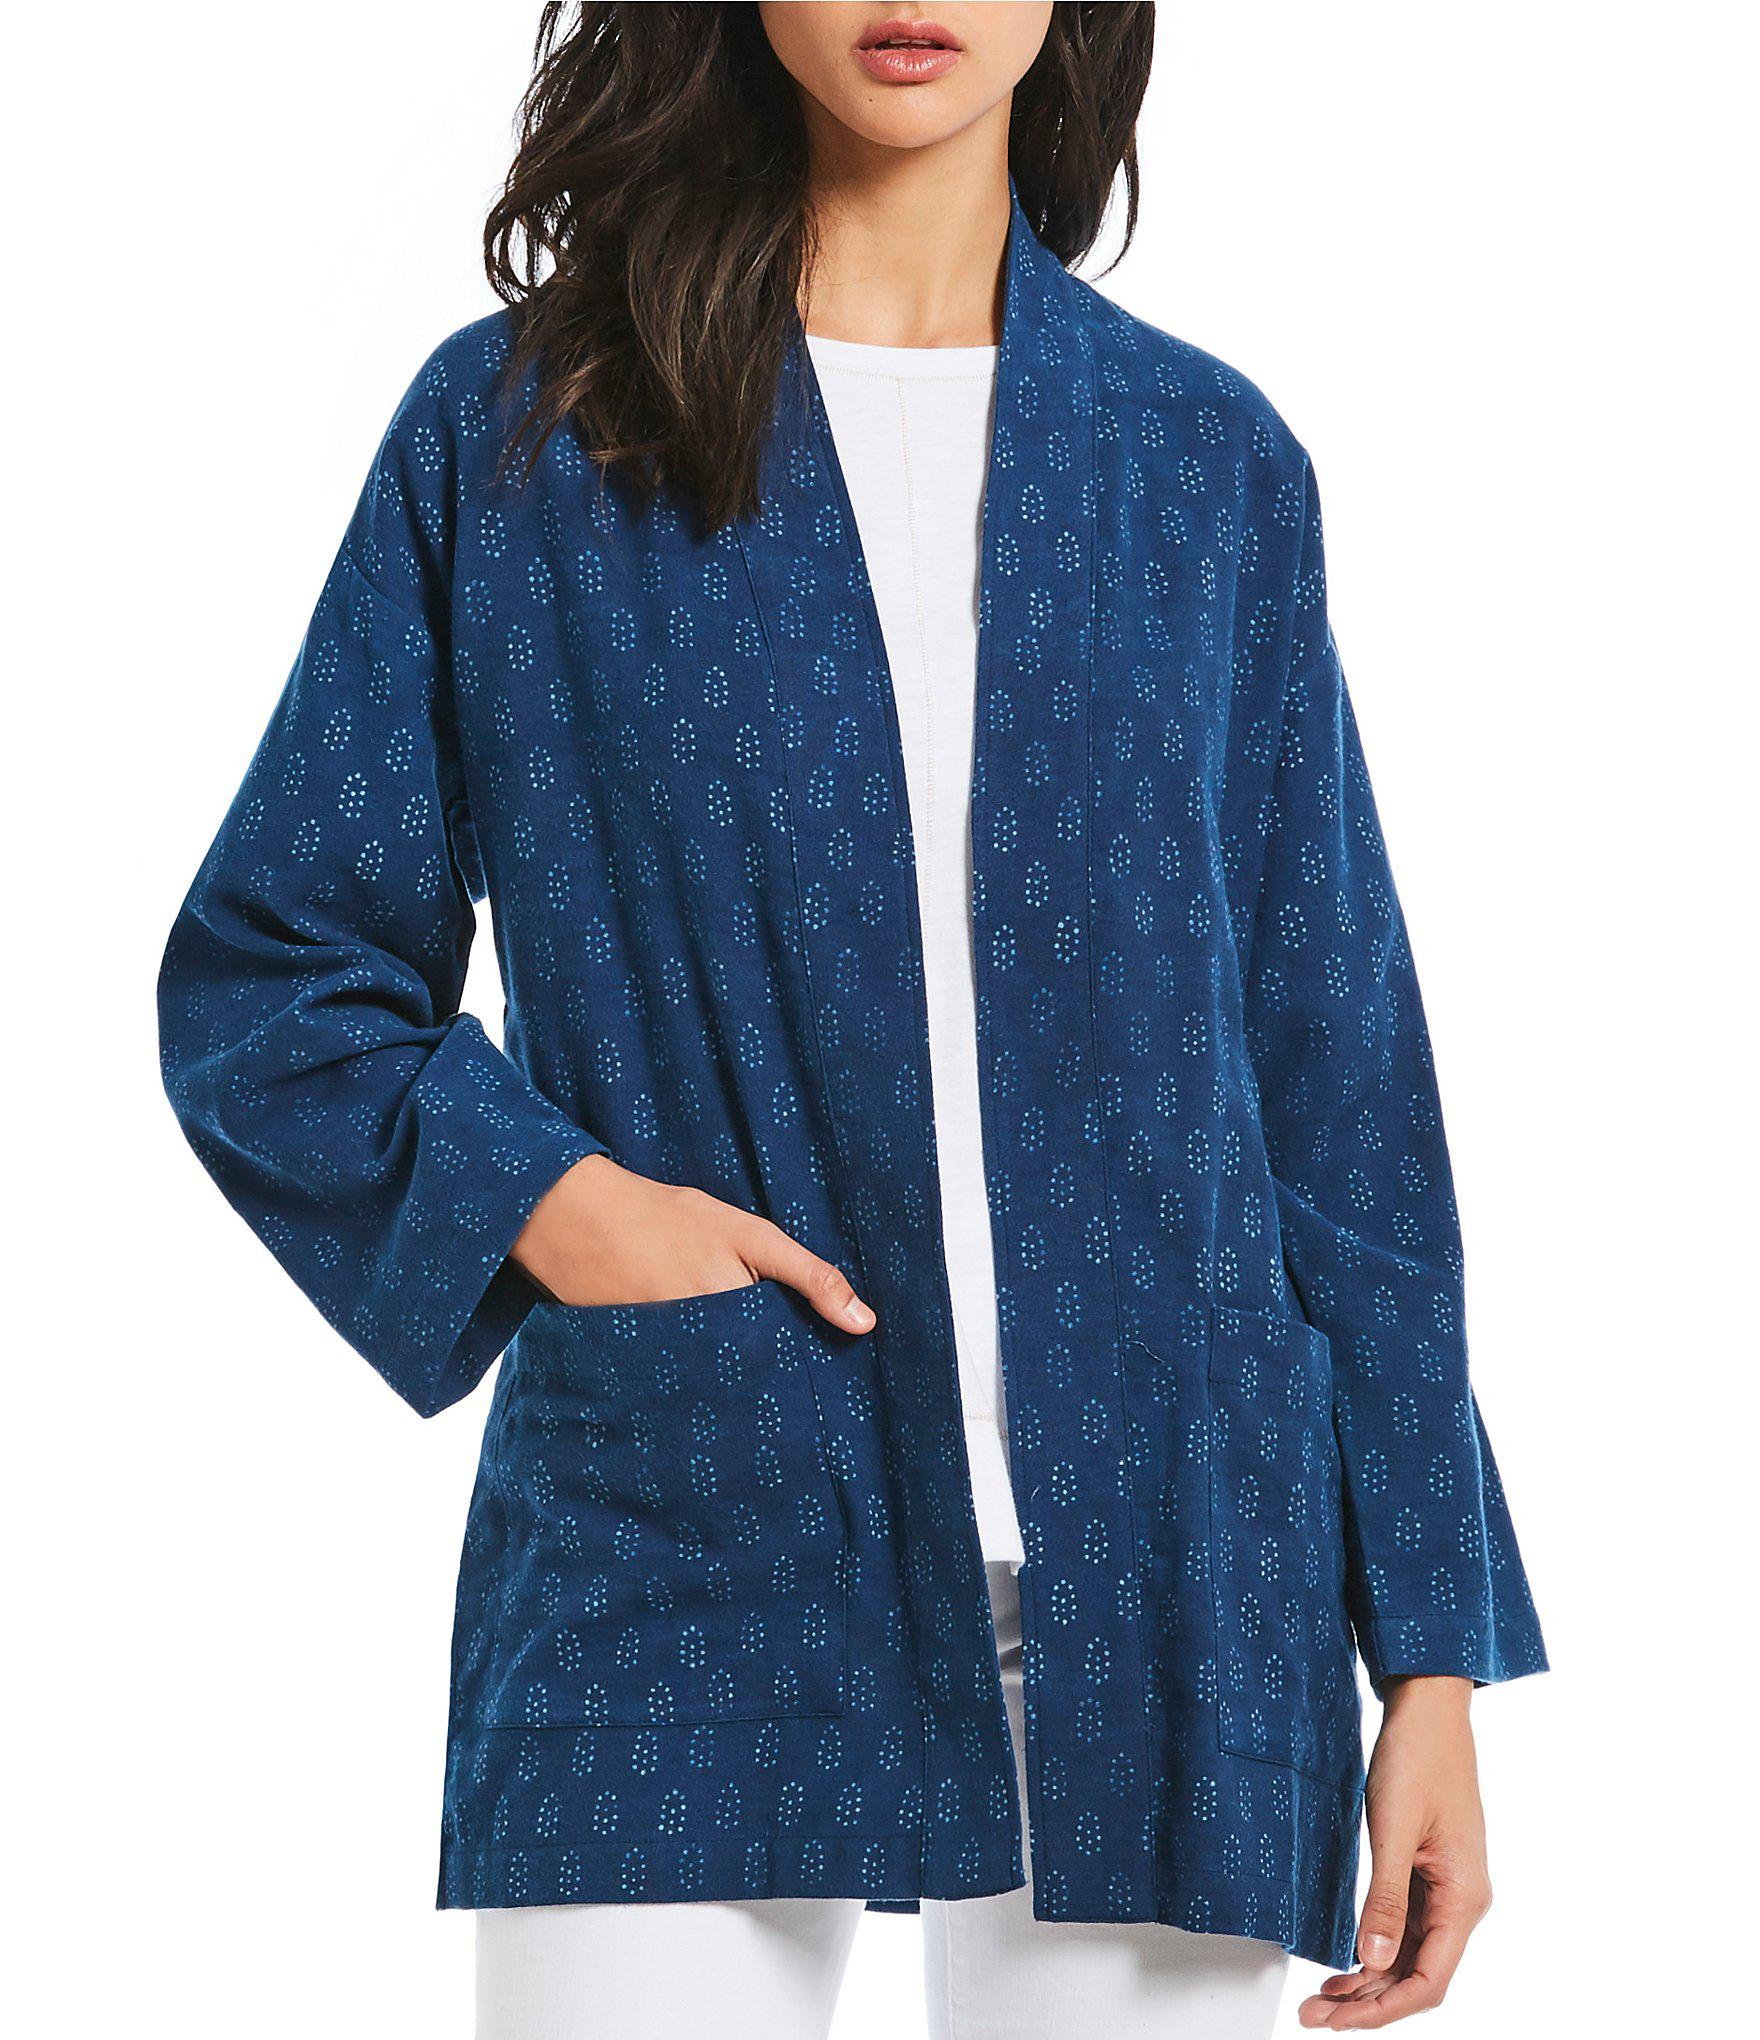 300b4d4690e Lyst - Eileen Fisher Petite Size Long Kimono Jacket in Blue - Save 10%